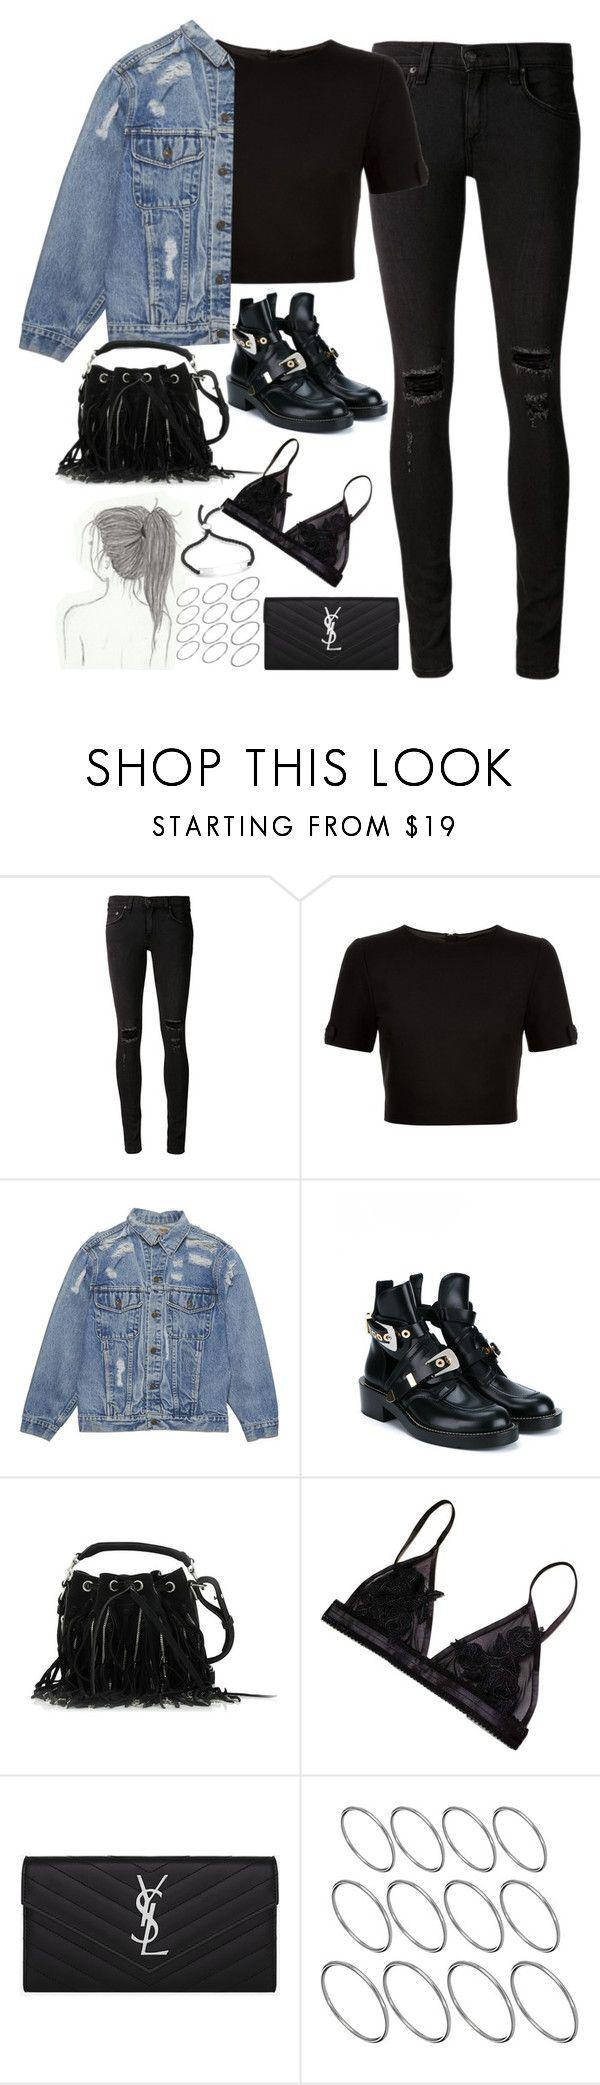 """3188a5109d541 Black Jeans Outfit Ideas : """"Untitled#4628"""" by fashionnfacts ❤ liked on  Polyvore"""